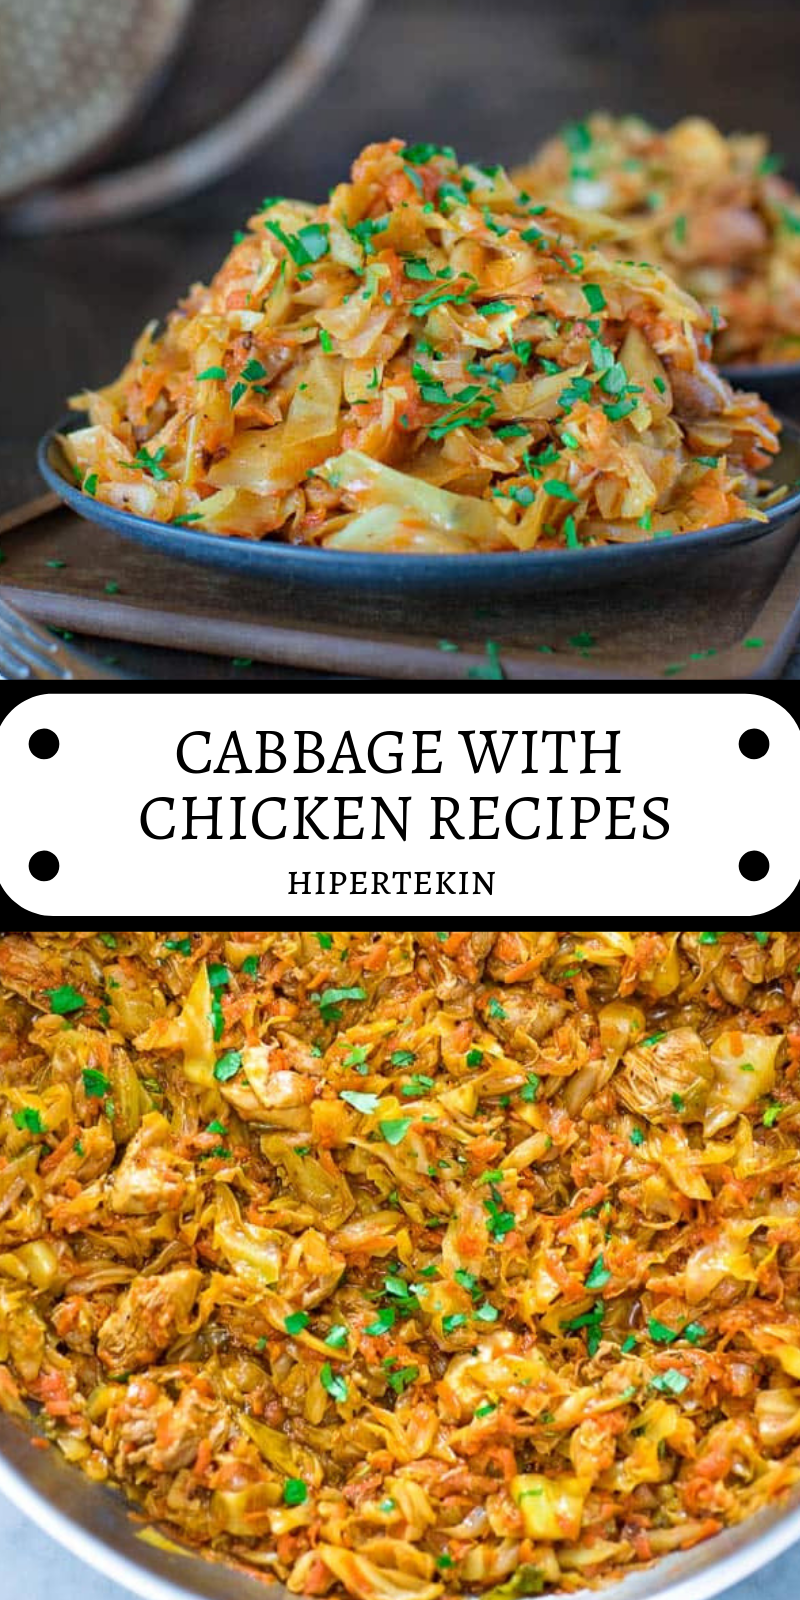 CABBAGE WITH CHICKEN RECIPES